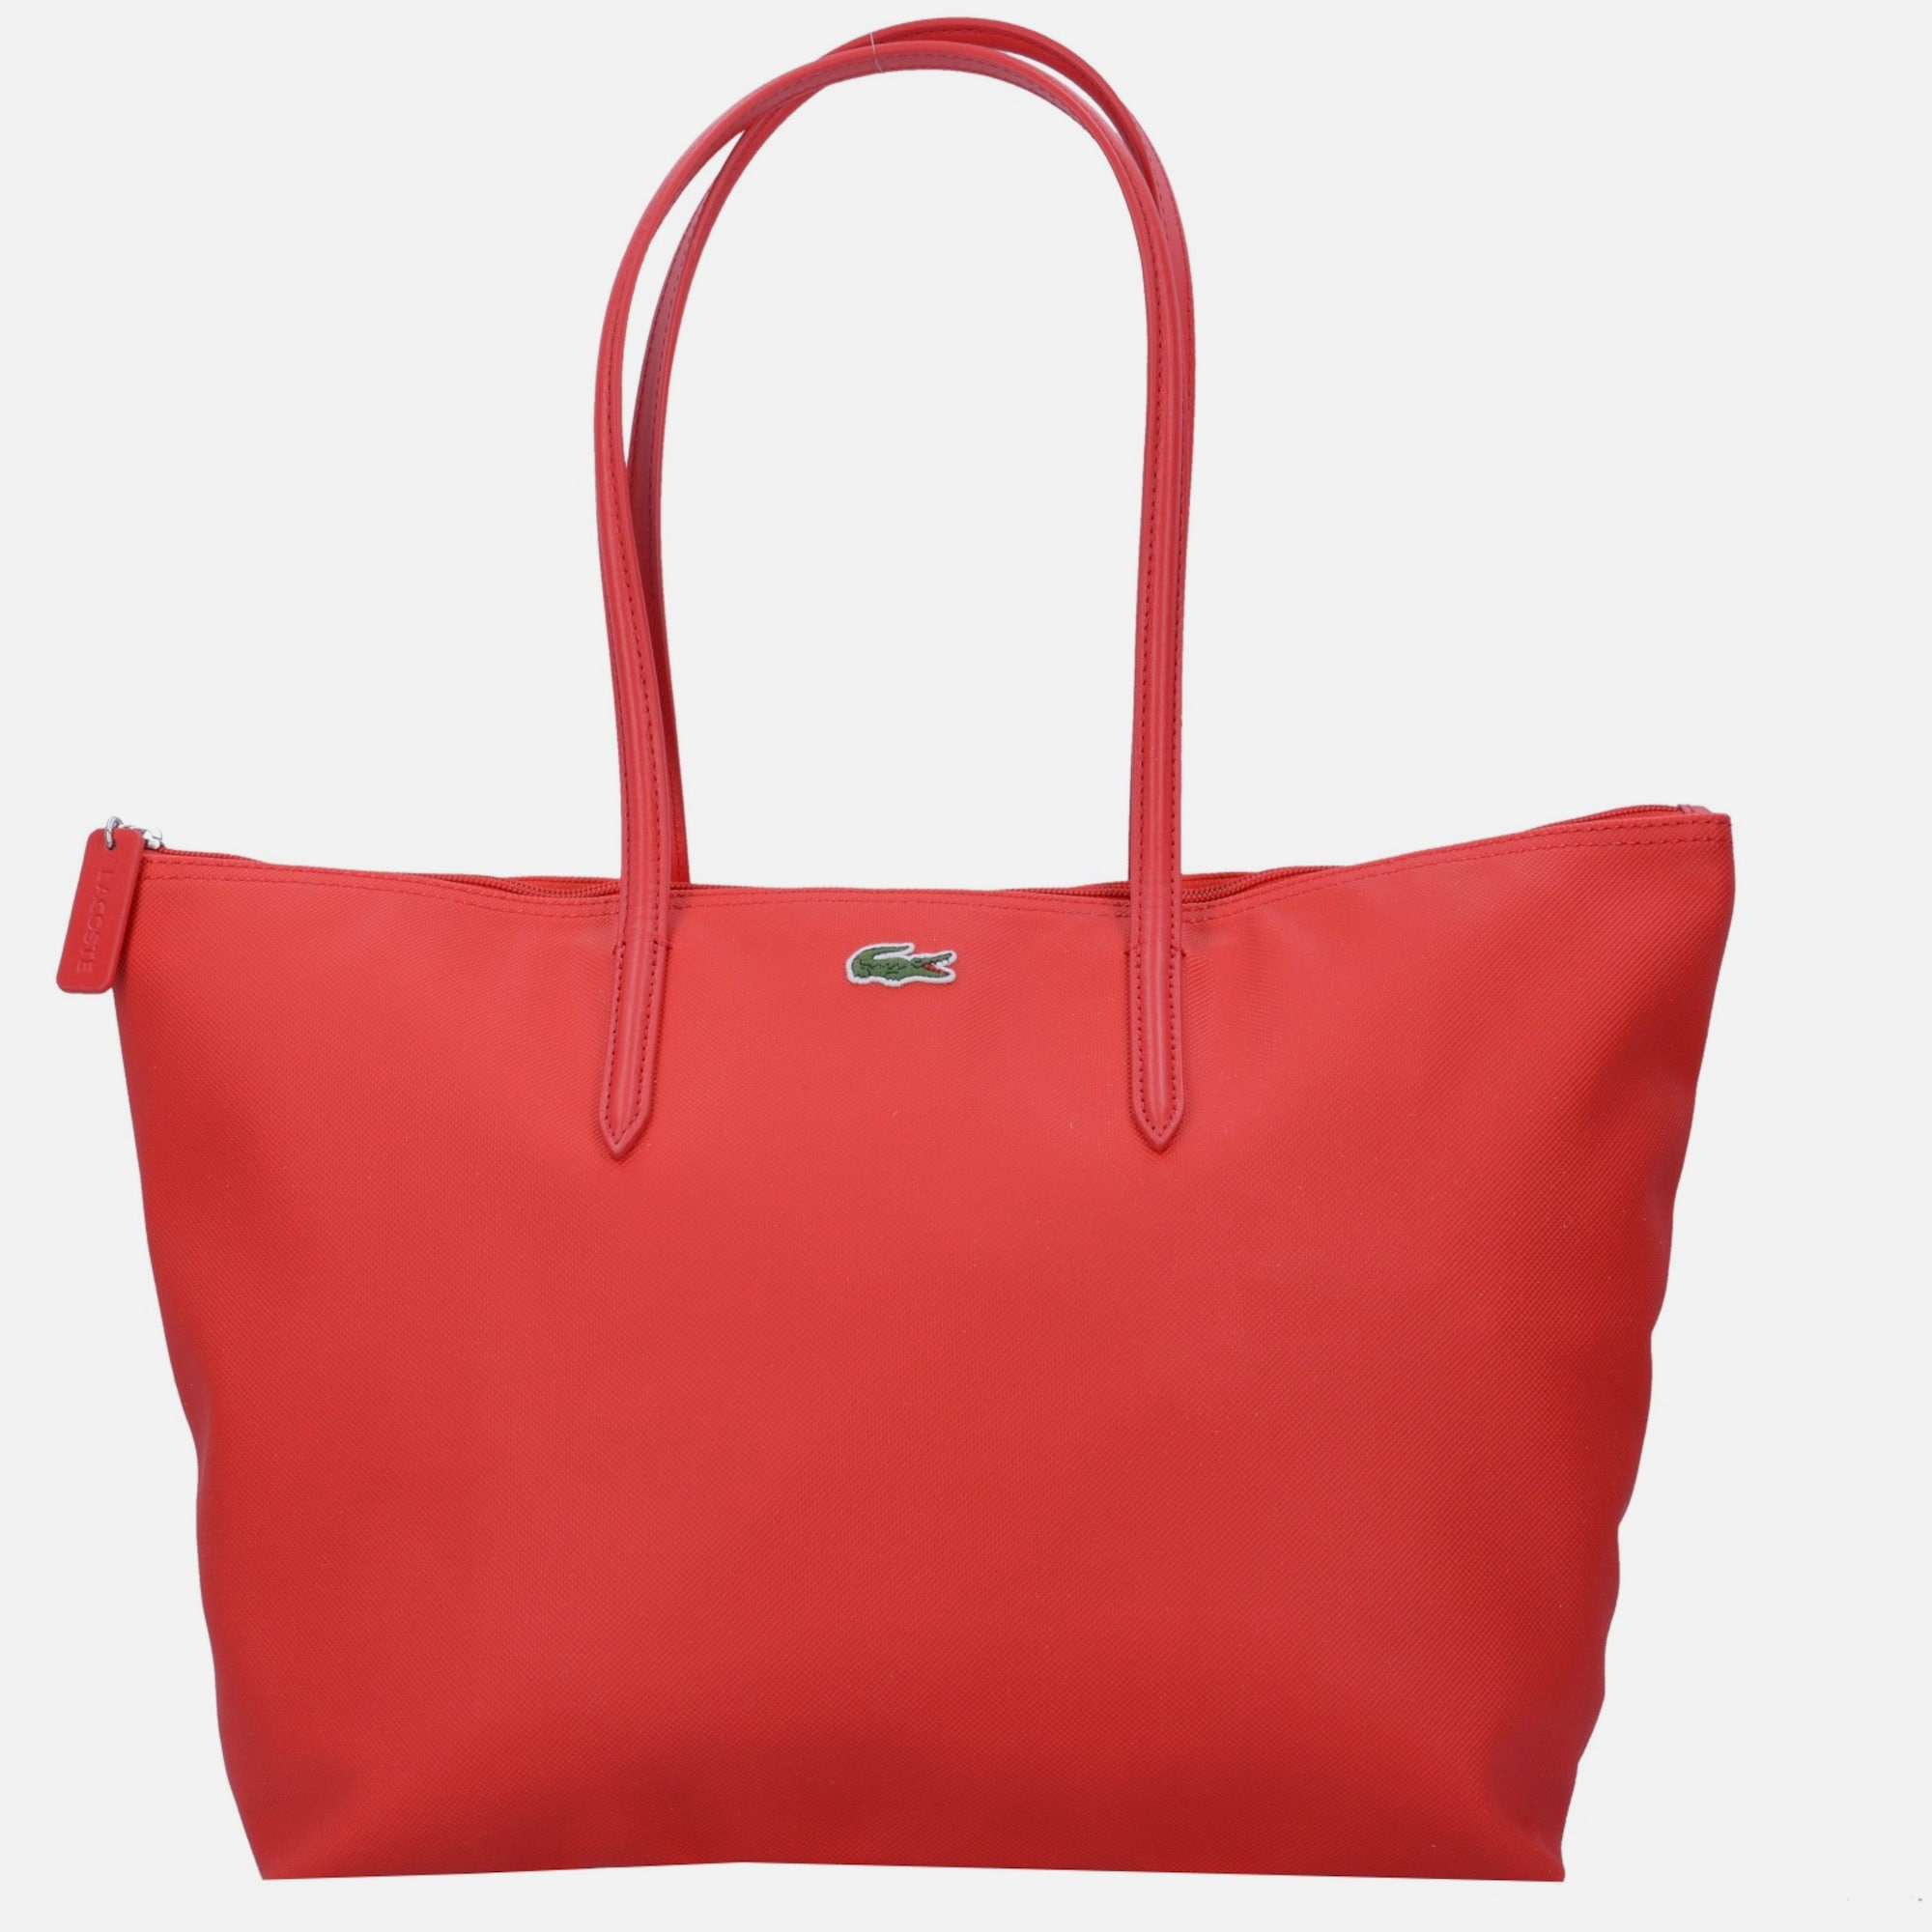 lacoste 39 sac femme l1212 concept l 39 shopper 47 cm in rot about you. Black Bedroom Furniture Sets. Home Design Ideas